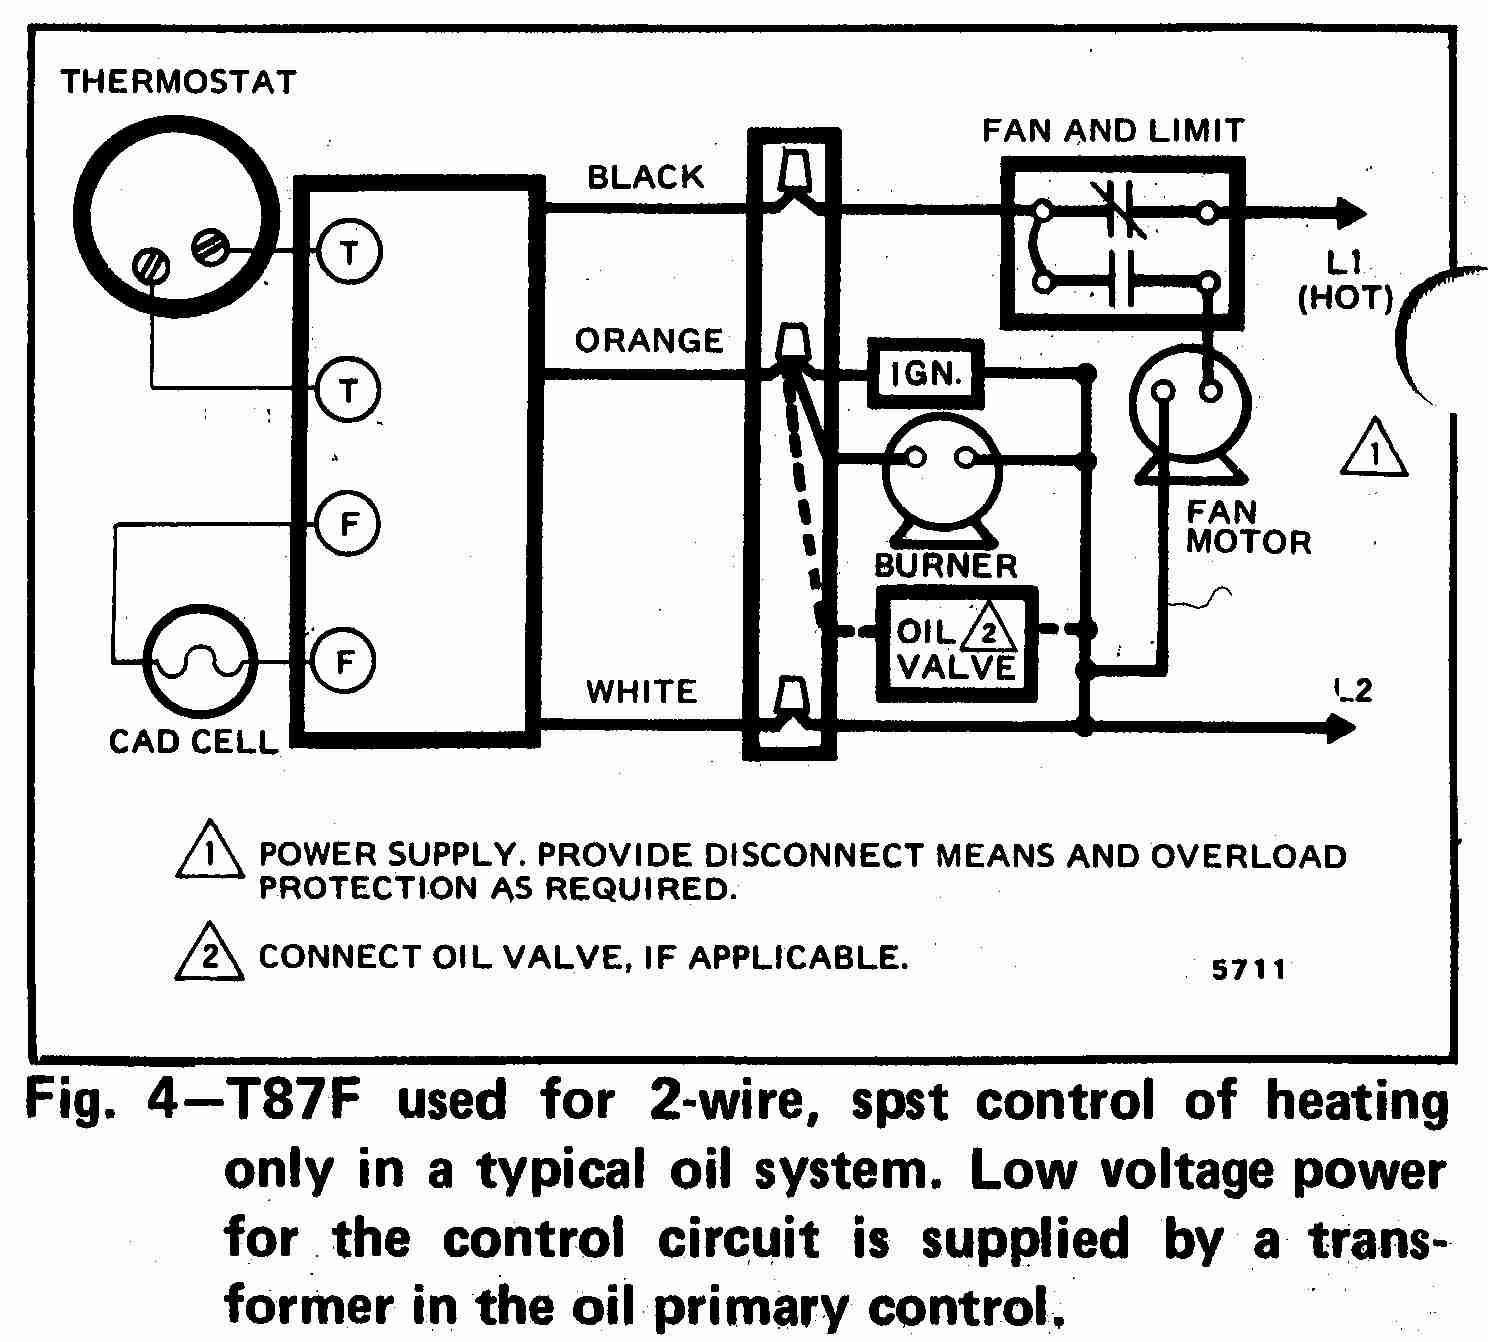 Room Thermostat Wiring Diagrams For Hvac Systems - Hvac Wiring Diagram